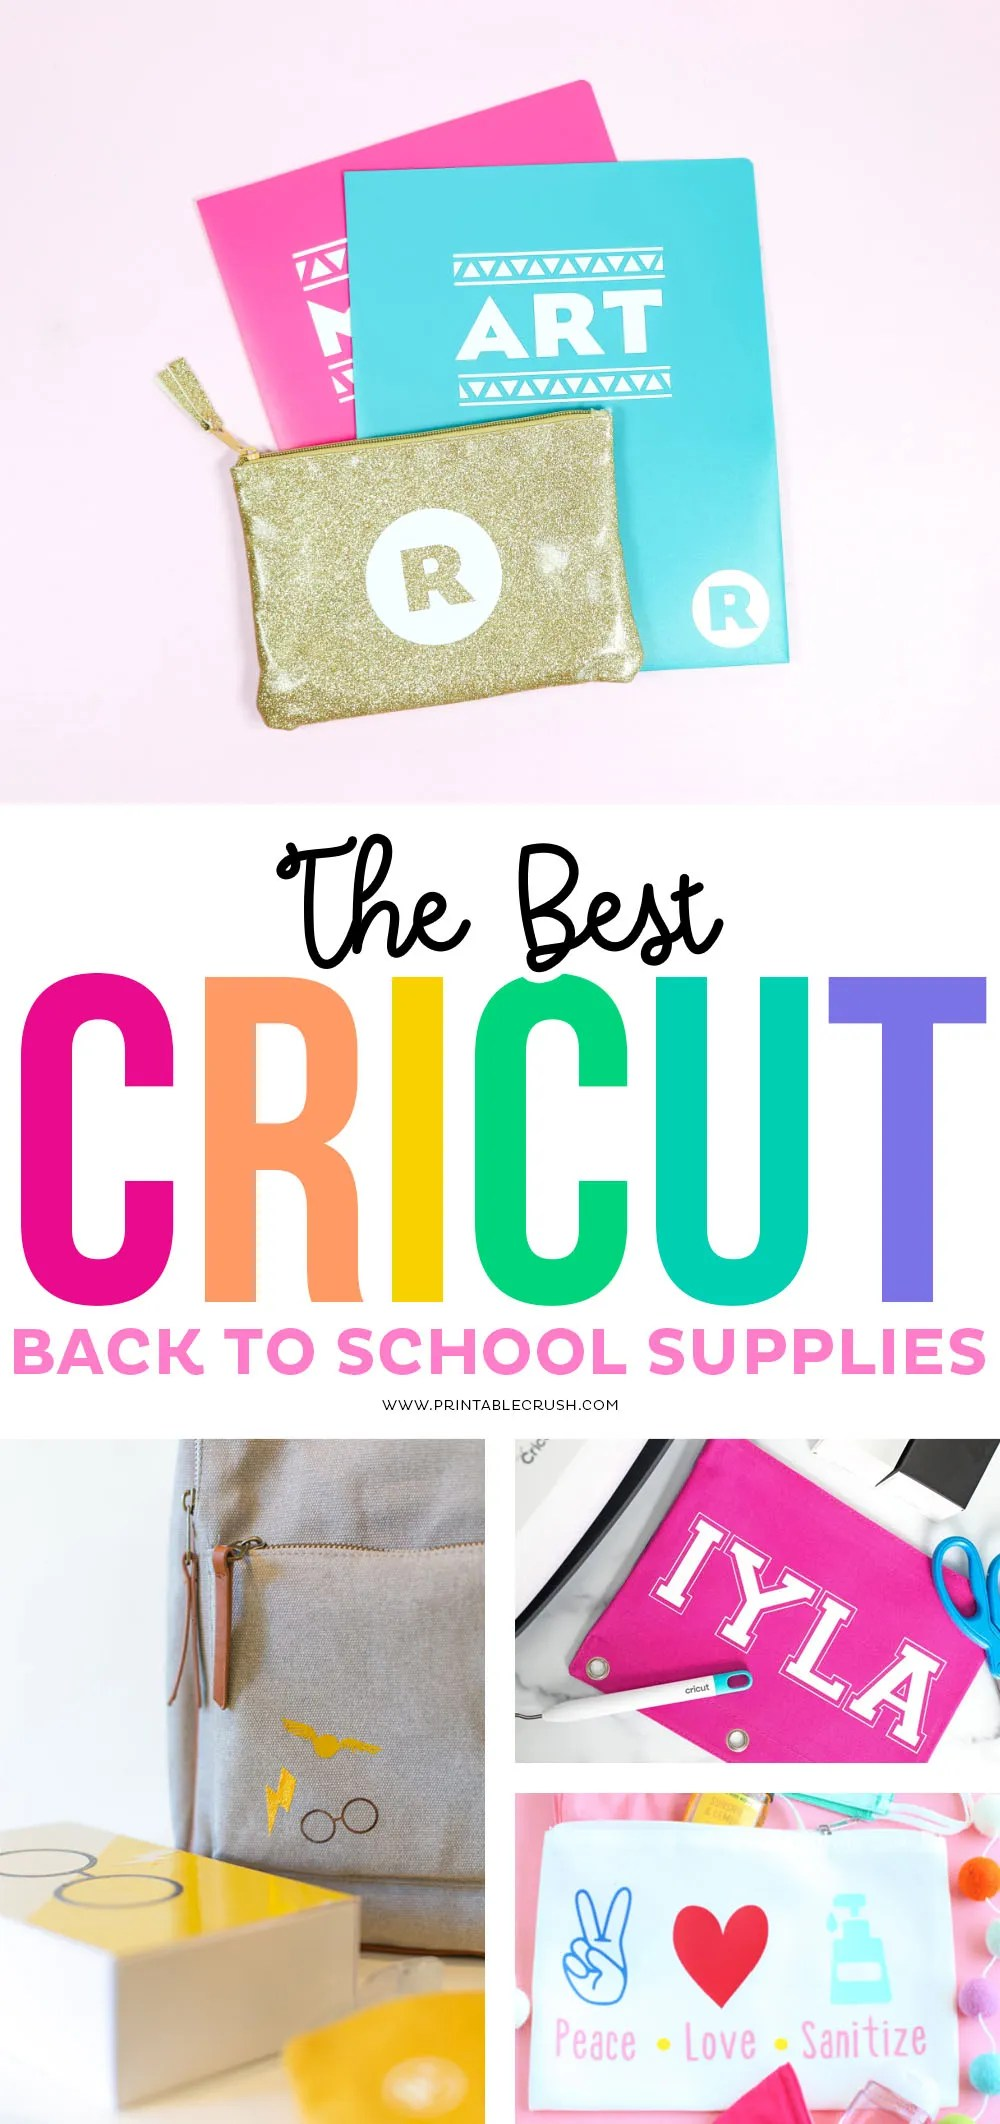 The BEST Cricut Personalized Back to School Supplies - Printable Crush #cricutcreated #backtoschool #cricutcraft #printablecrush #cricut #kidcrafts #cricutkidcraft #schoolcrafts #schoolsupplies via @printablecrush